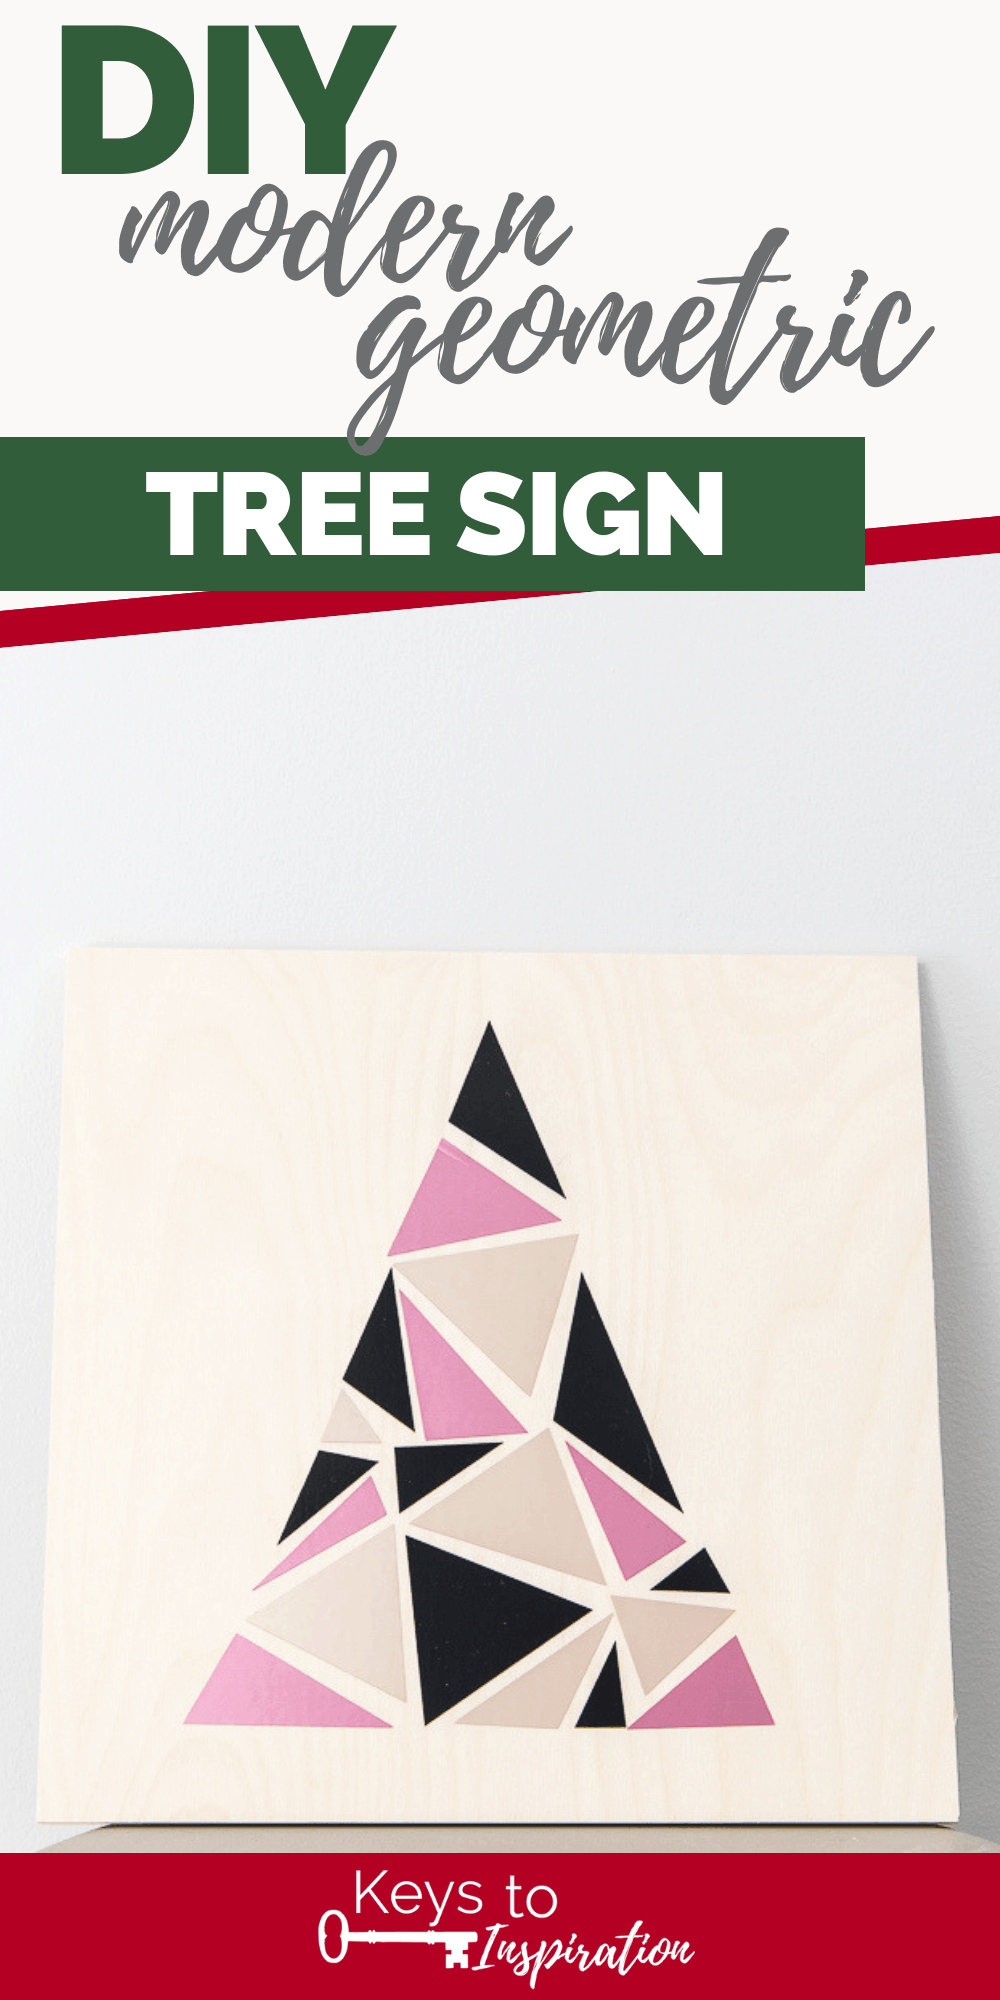 modern geometric tree sign adhesive foil vinyl